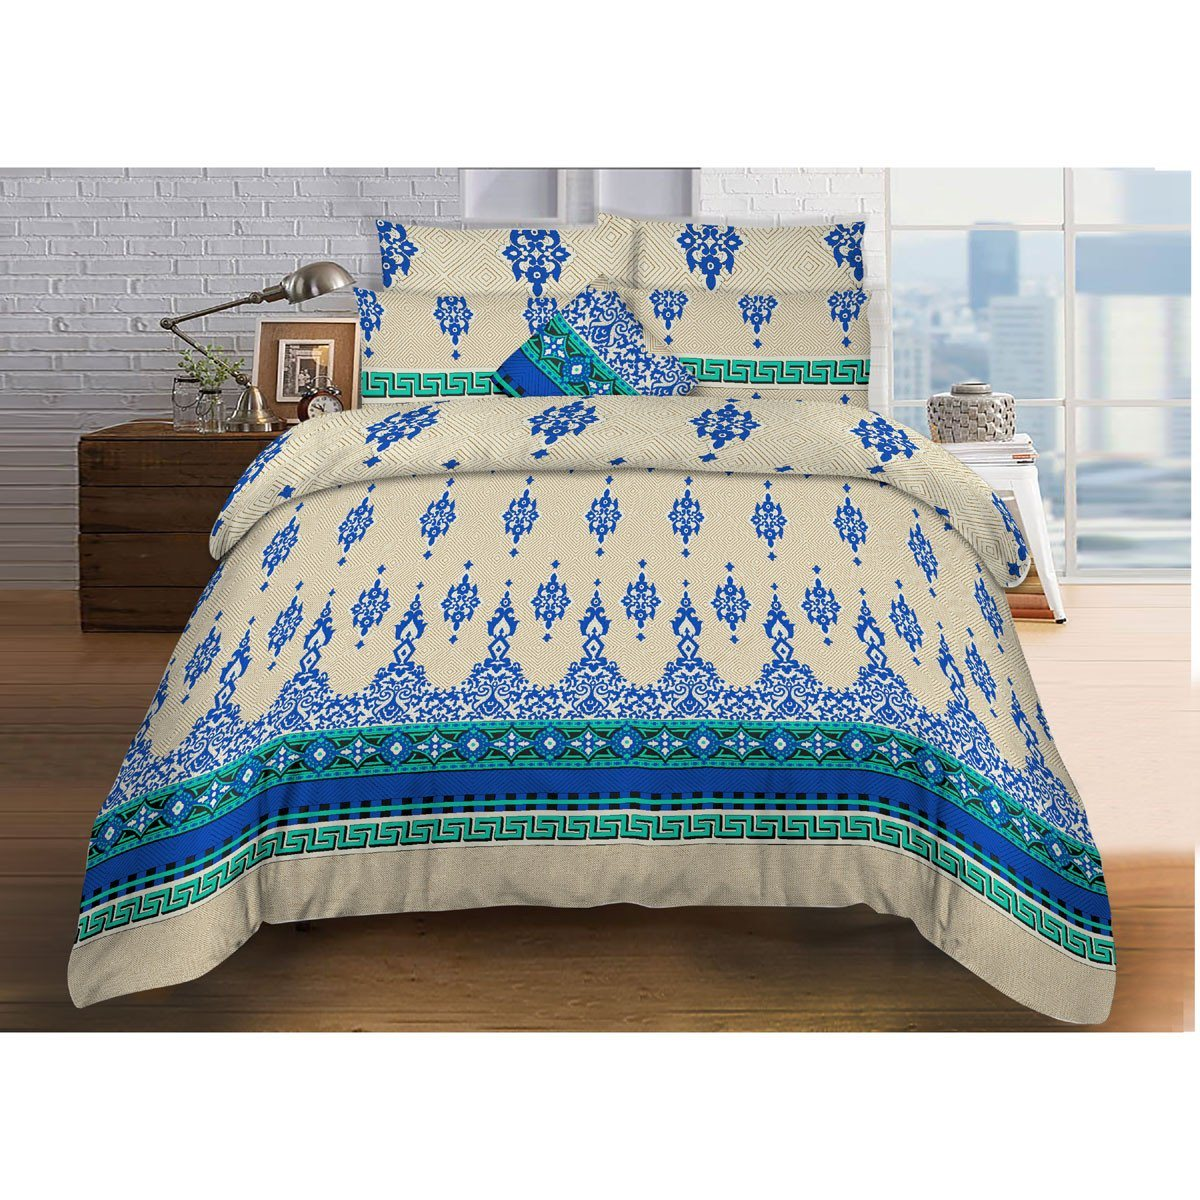 Bed sheet set with quilt - Bed Sheet Set With Quilt 22